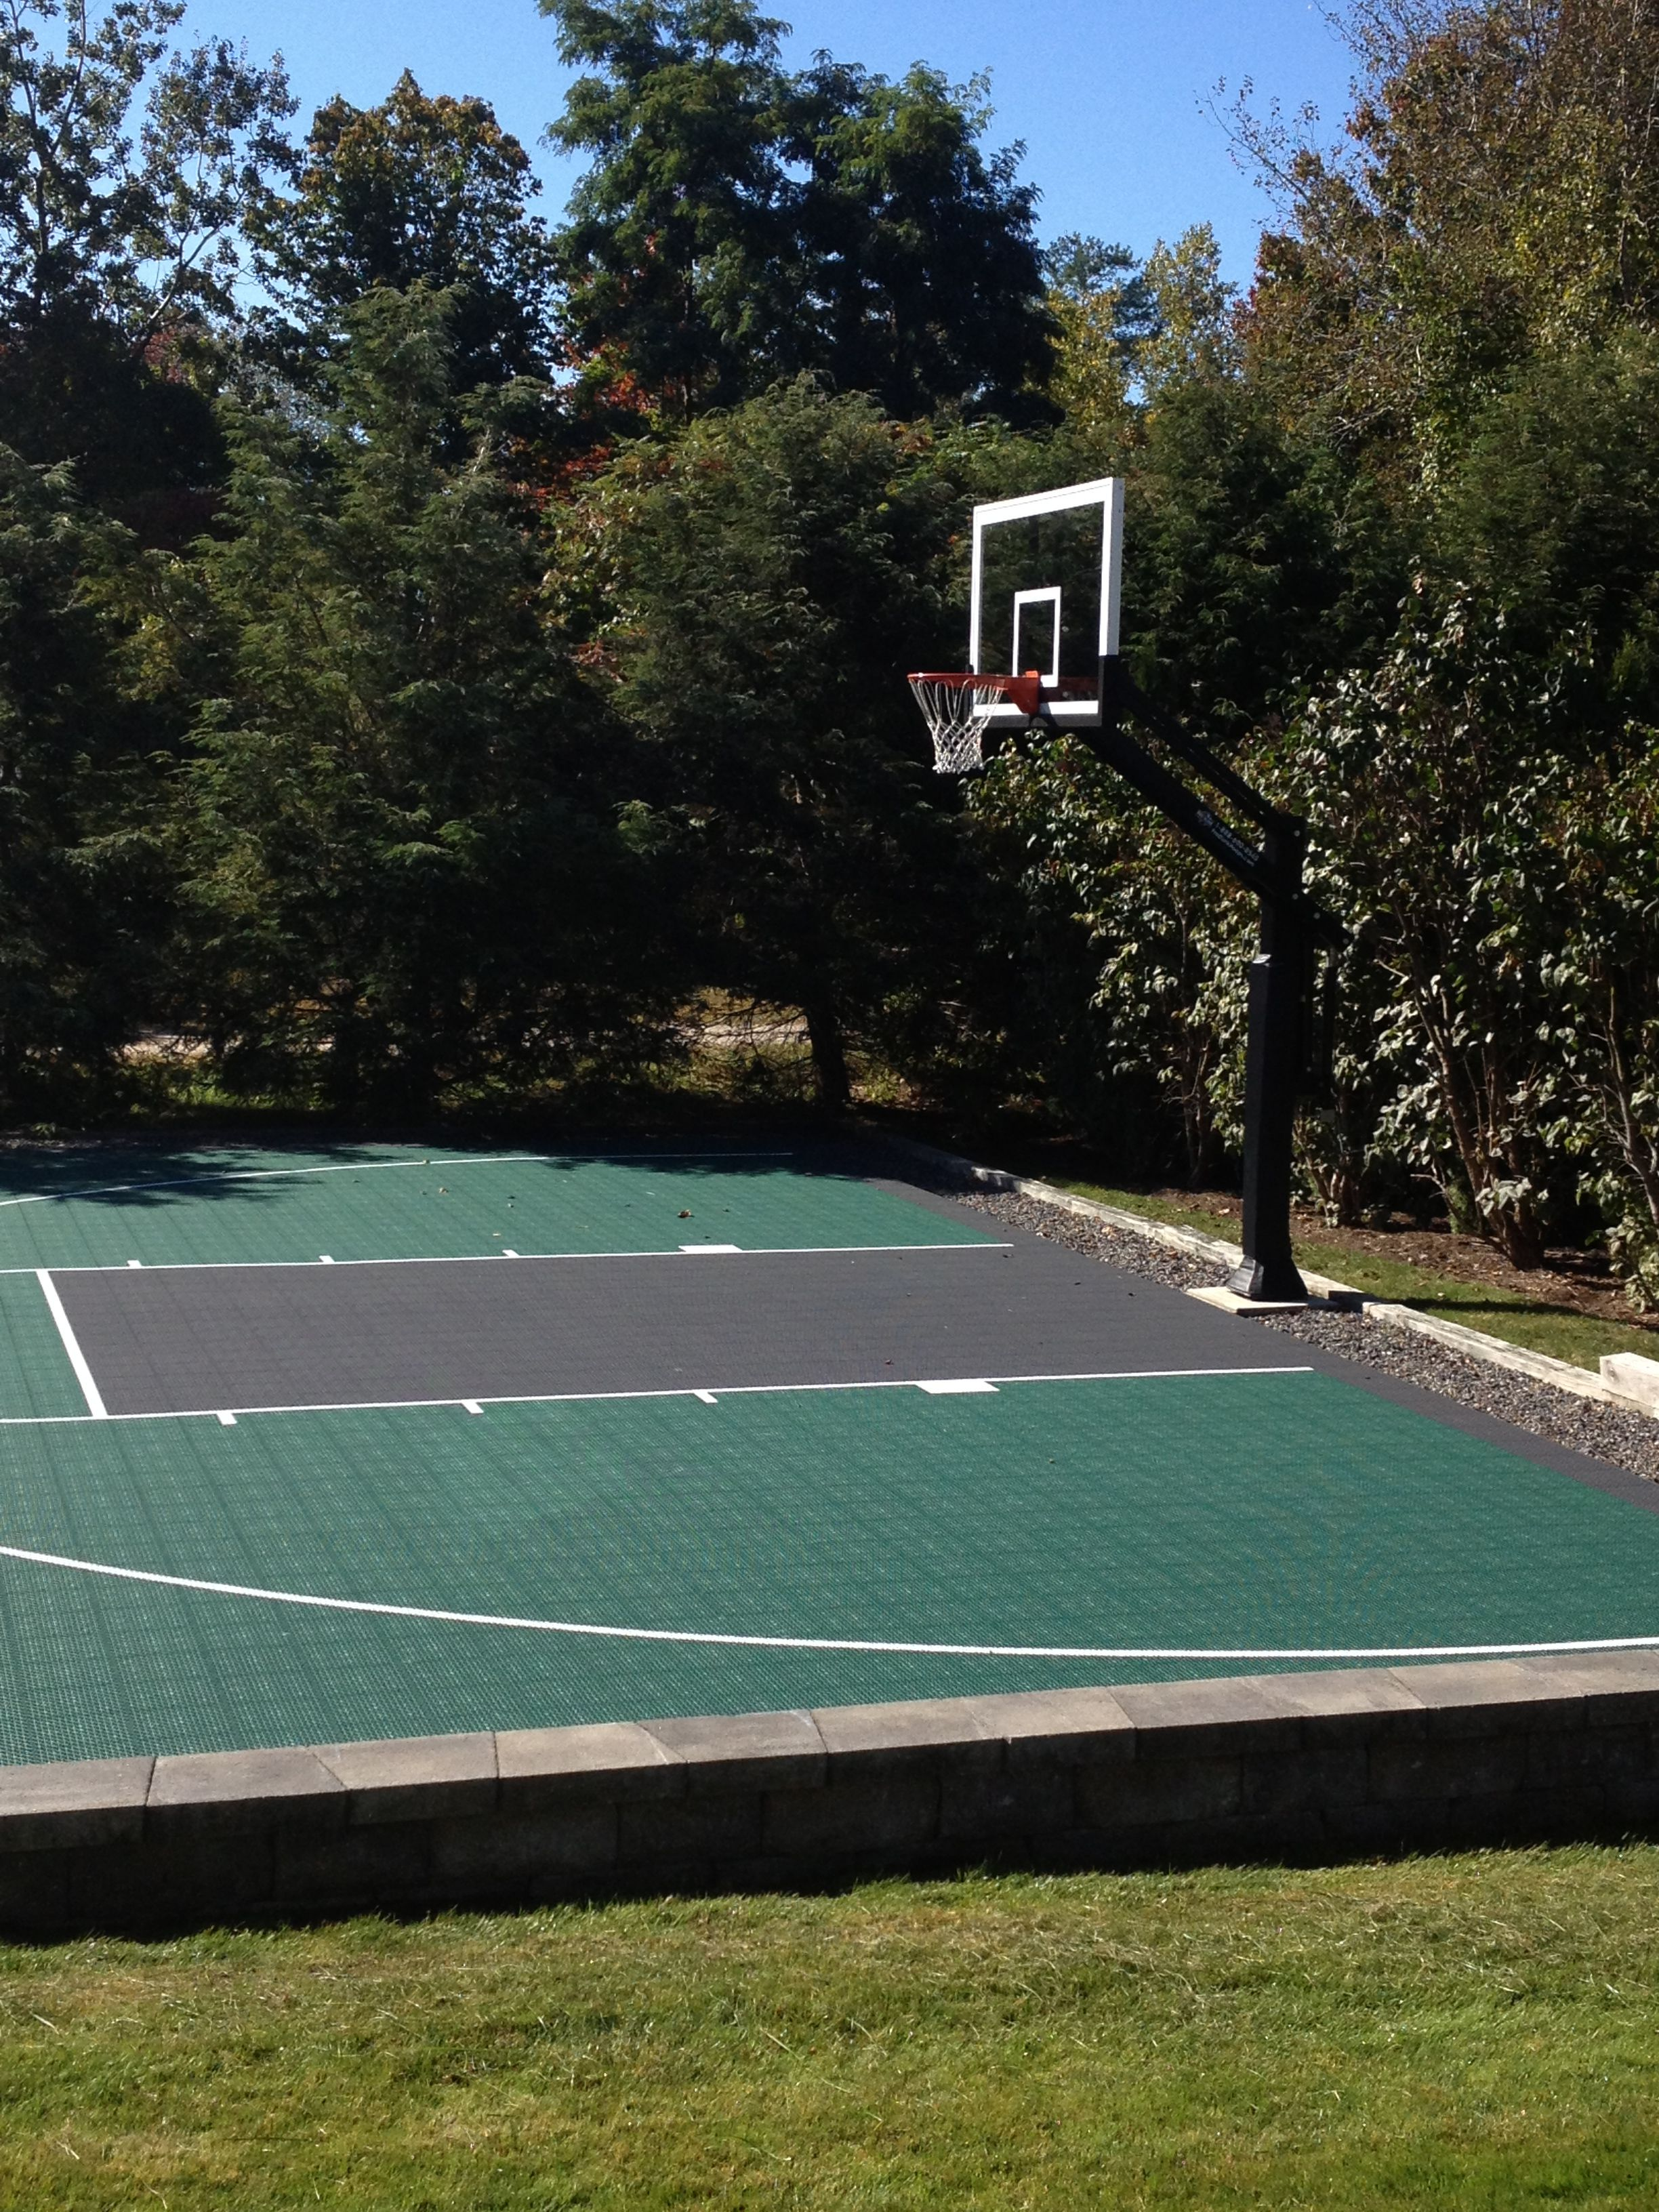 pro dunk diamond basketball system is standing solid and secured